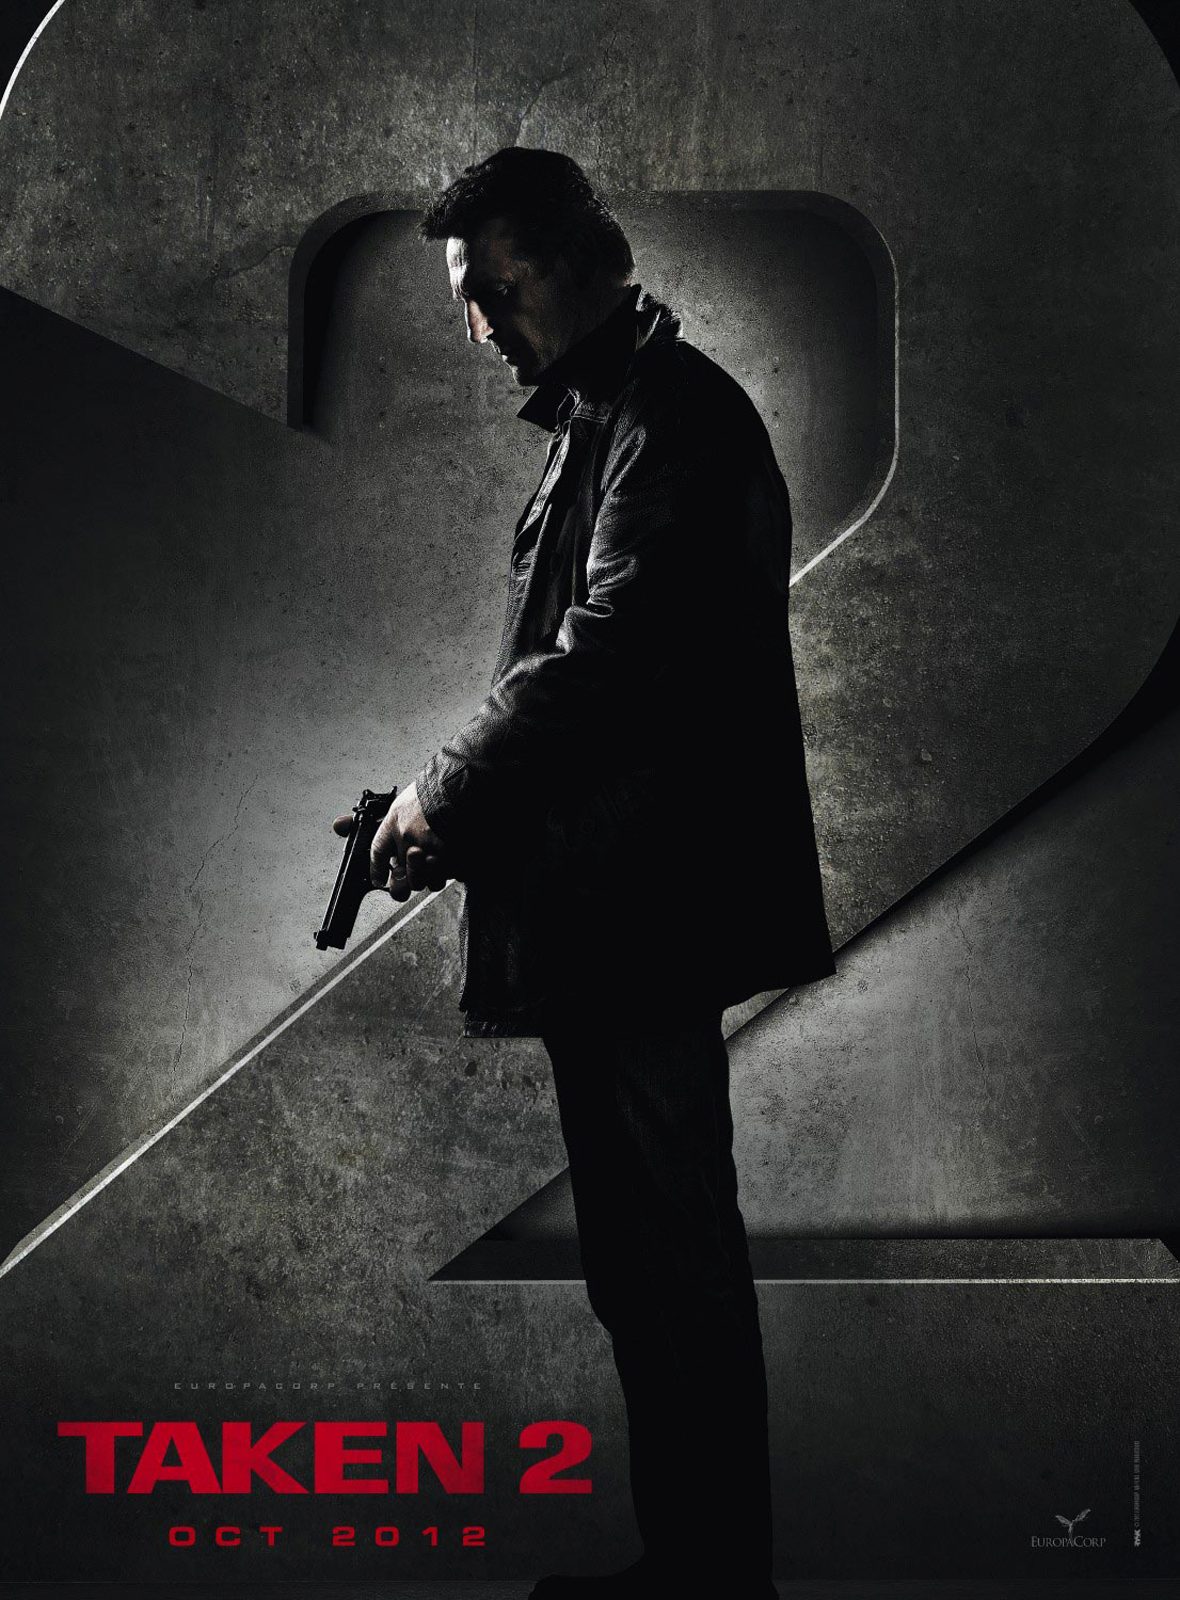 Taken 2 Movie 2012 HD Taken 2 Movie 2012 HD Wallpapers Poster Download Free Wallpapers 1180x1600 Movie-index.com